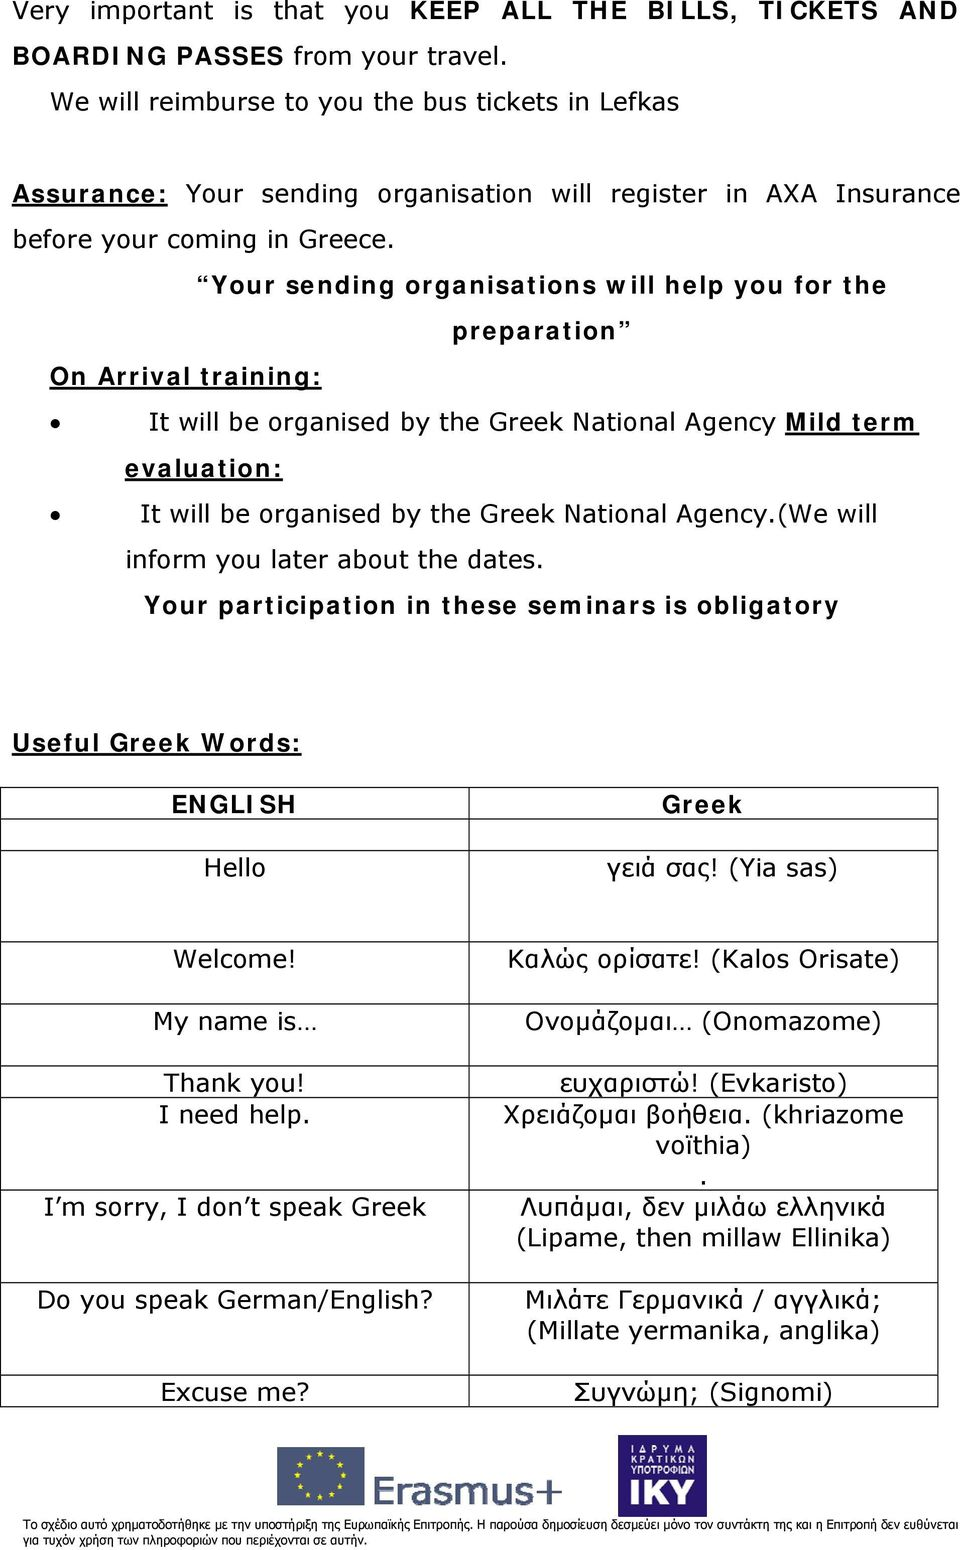 Your sending organisations will help you for the preparation On Arrival training: It will be organised by the Greek National Agency Mild term evaluation: It will be organised by the Greek National